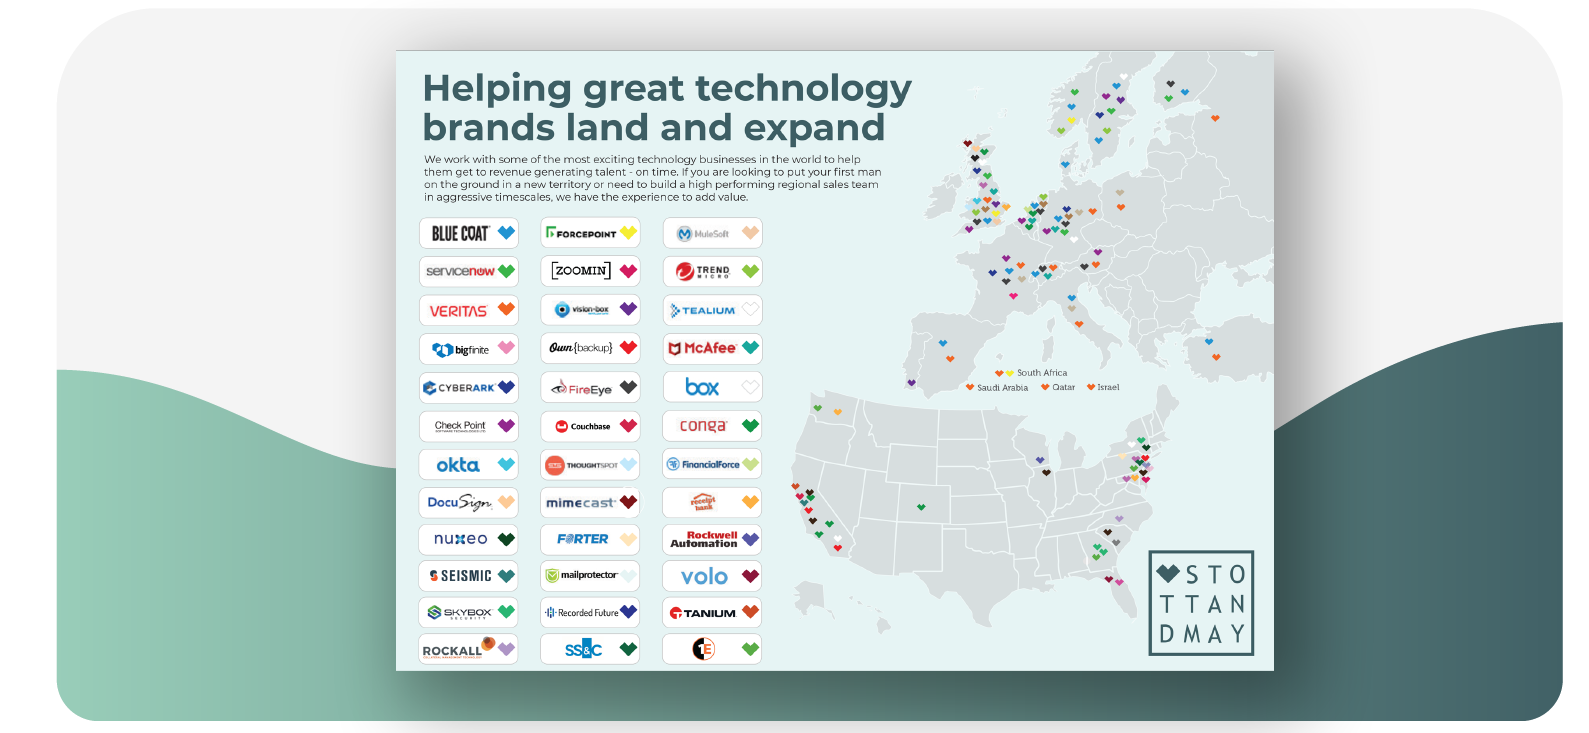 Stott and May Global Tech Sales Placements Map